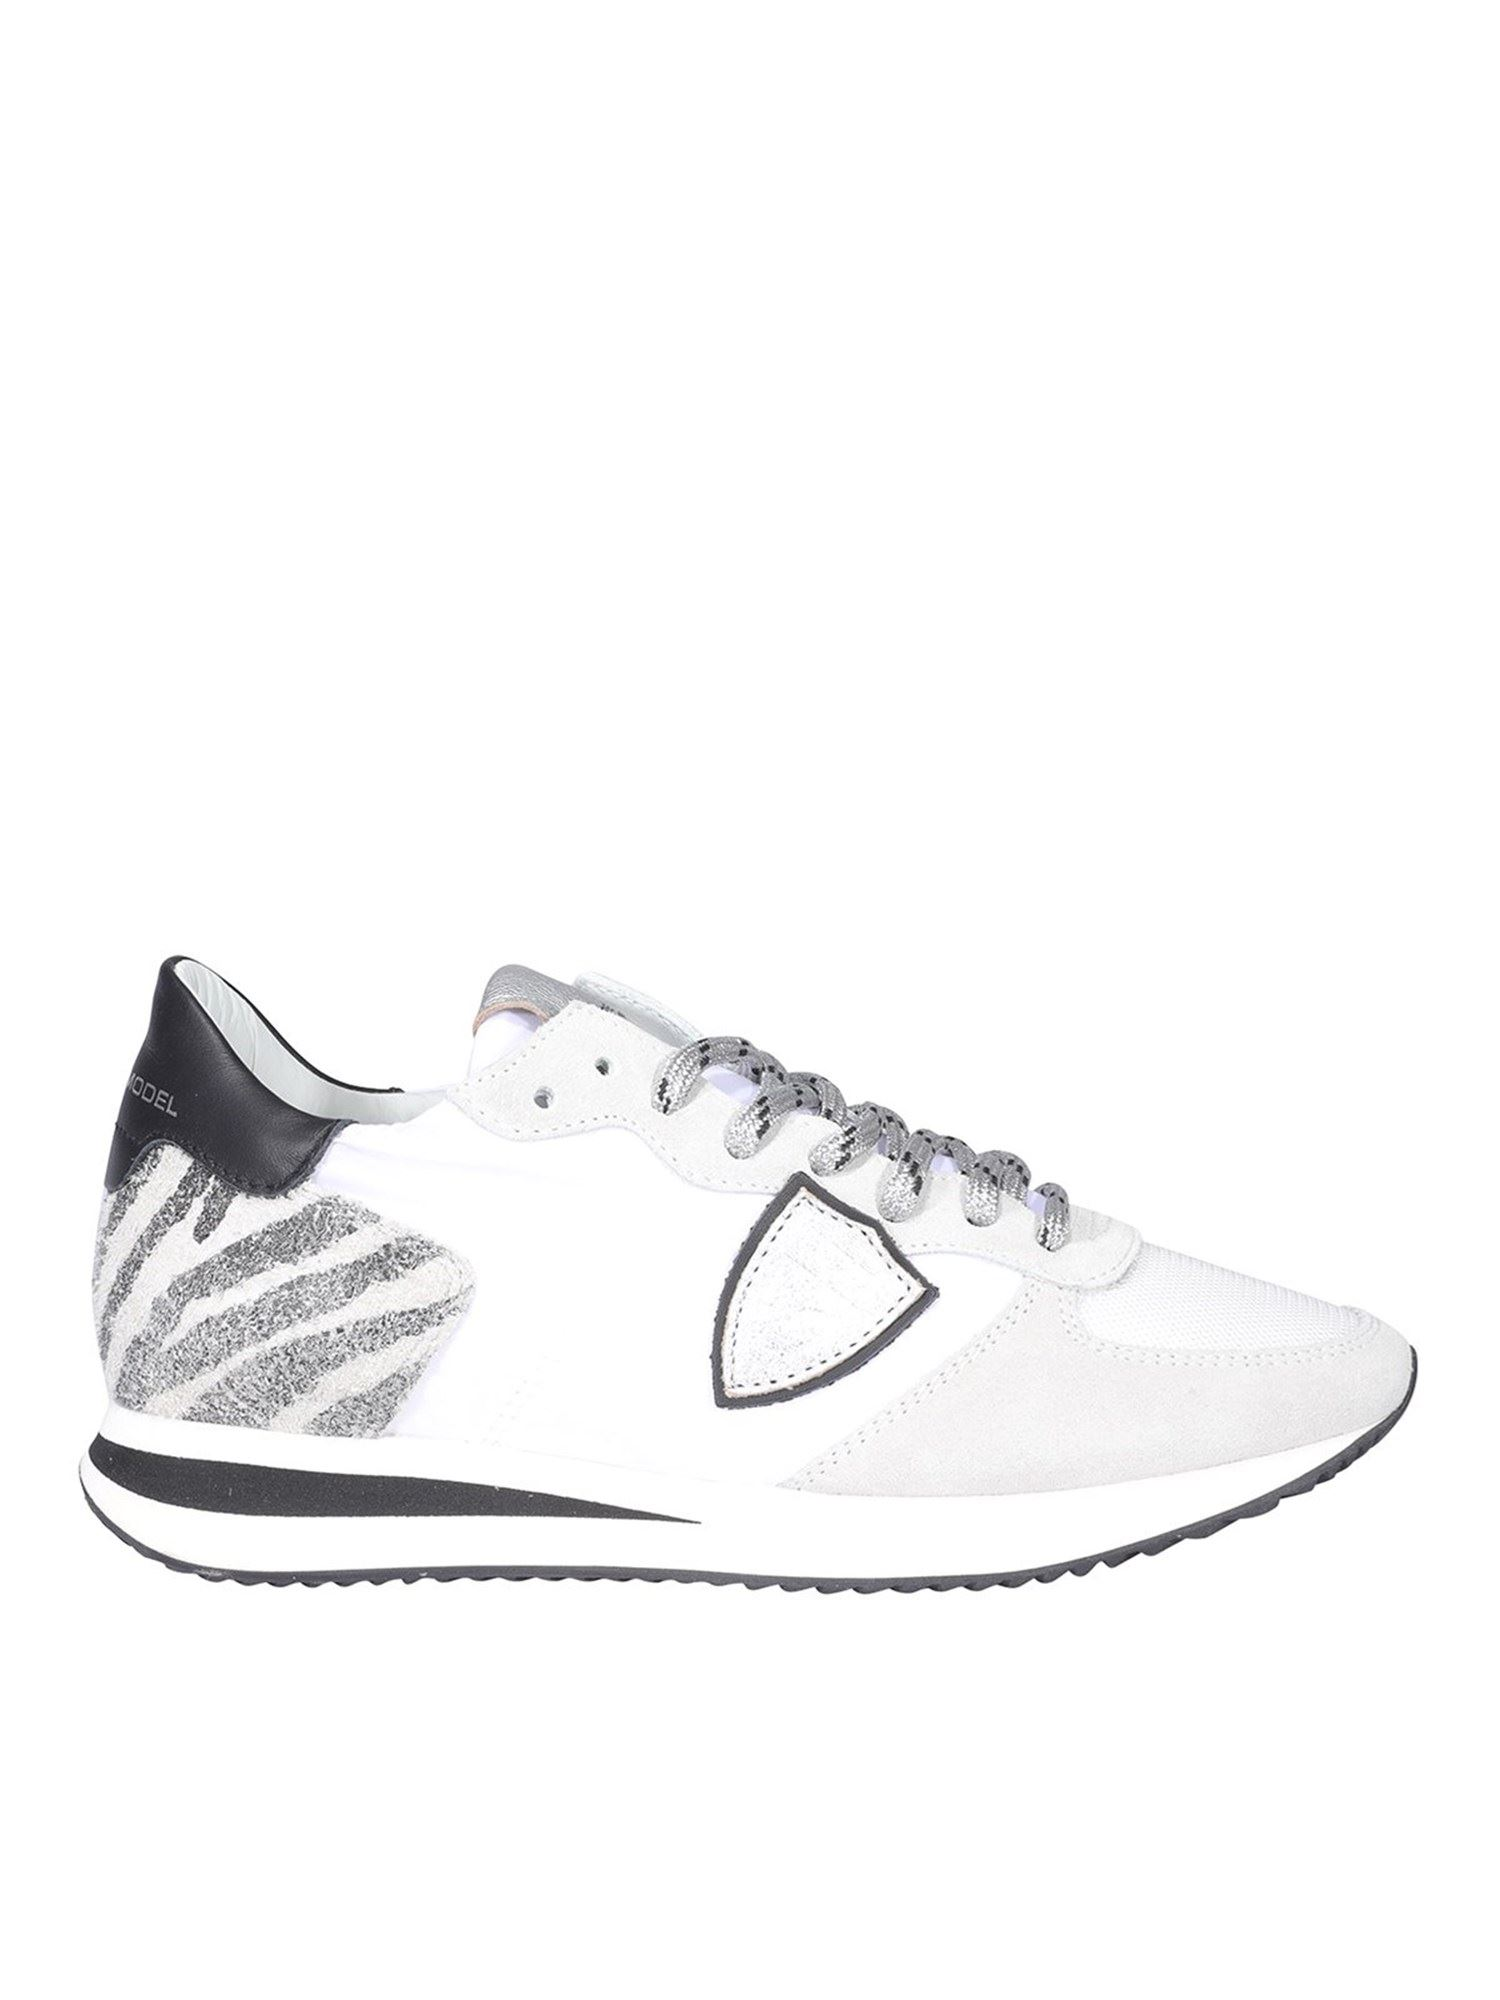 Philippe Model TRPX MONDIAL SNEAKERS IN WHITE